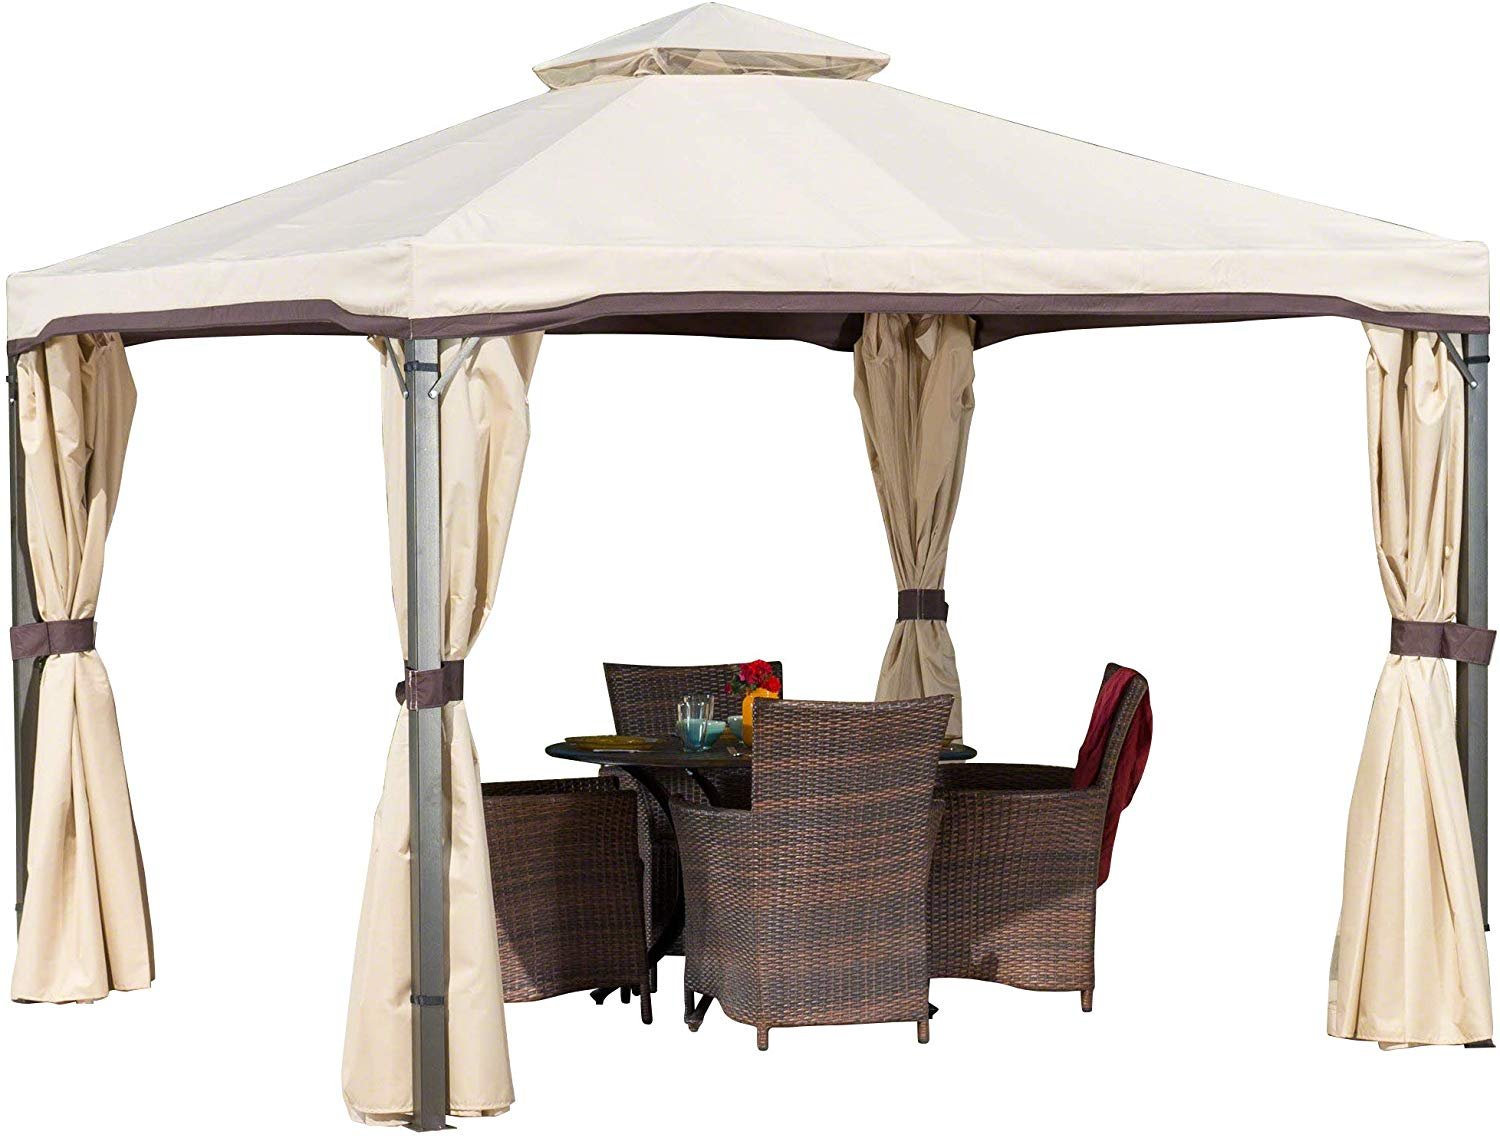 Christopher Knight Home Sonoma Outdoor Iron Gazebo Canopy Umbrella with Net Drapery